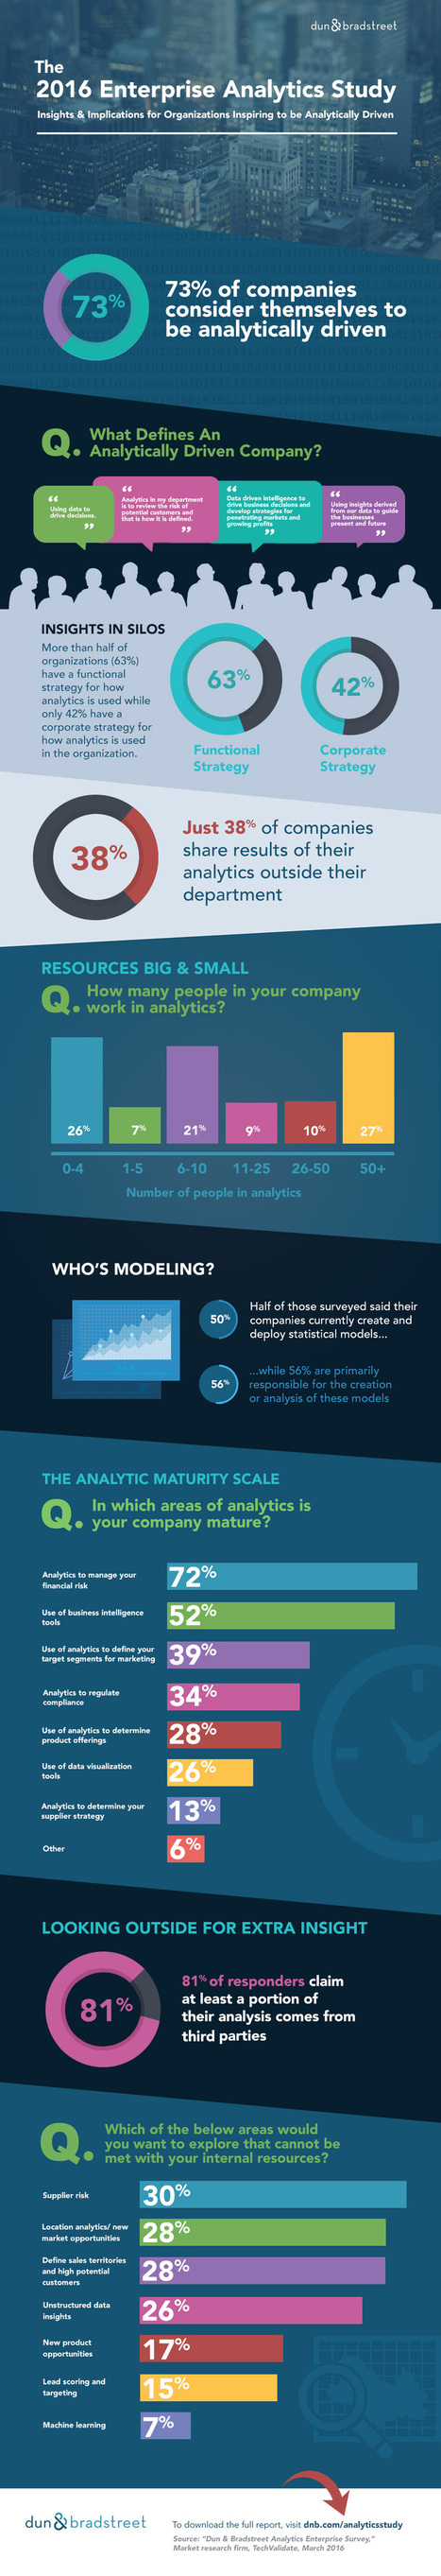 INFOGRAPHIC: The 2016 State of Enterprise Analytics - Predictive Analytics Times - predictive analytics & big data news | Integrated Brand Communications | Scoop.it